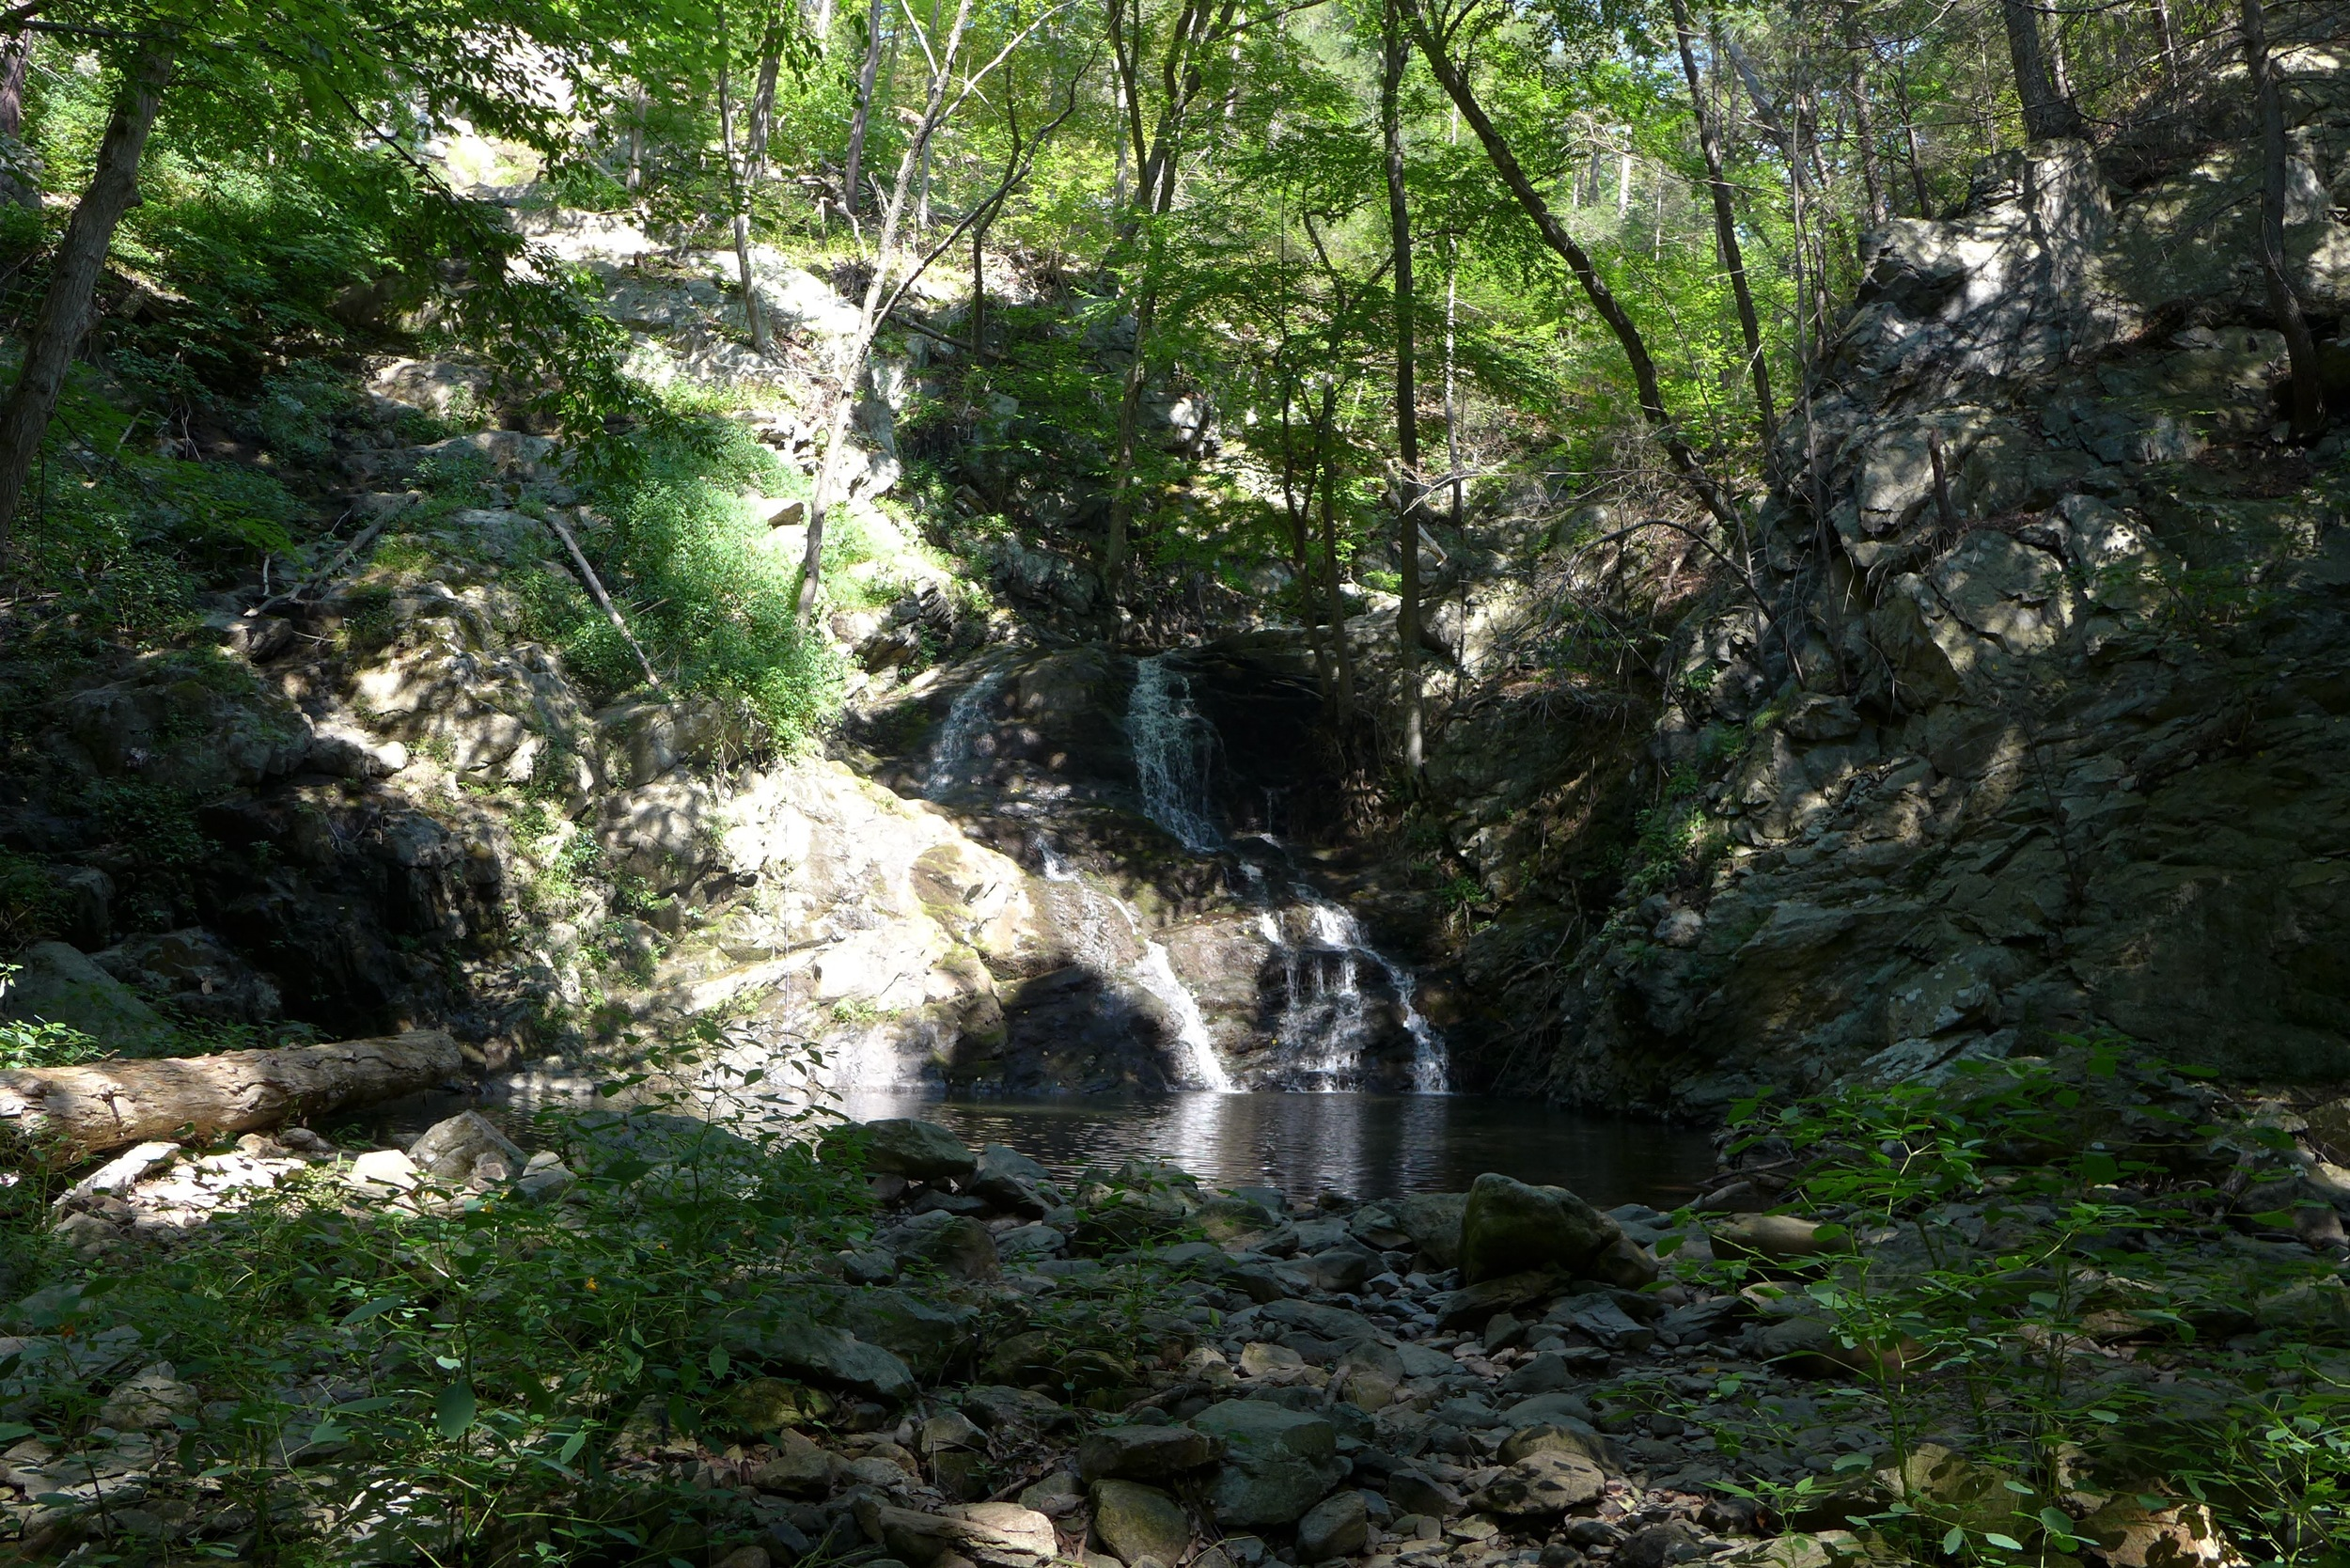 Lower falls at Philipstown Park